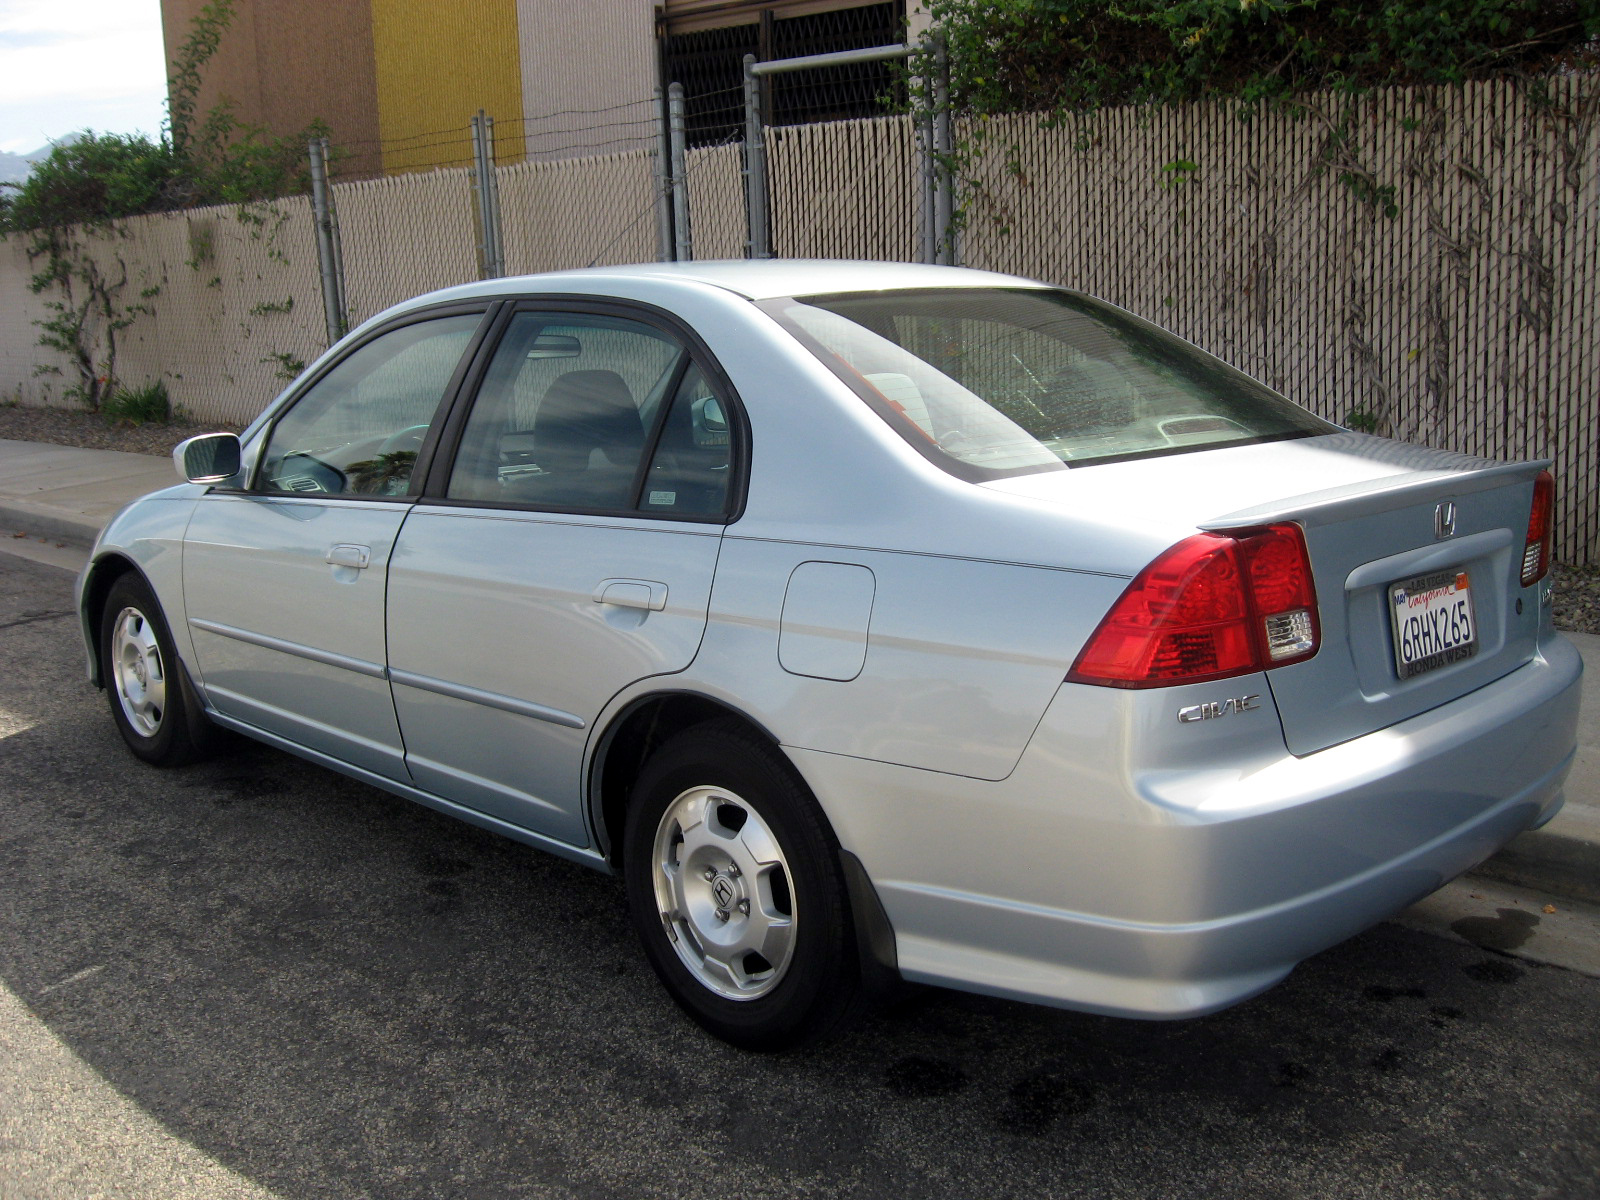 Dodge San Diego >> 2004 Honda Civic Hybrid - SOLD [2004 Honda Civic Hybrid] - $5,900.00 : Auto Consignment San ...